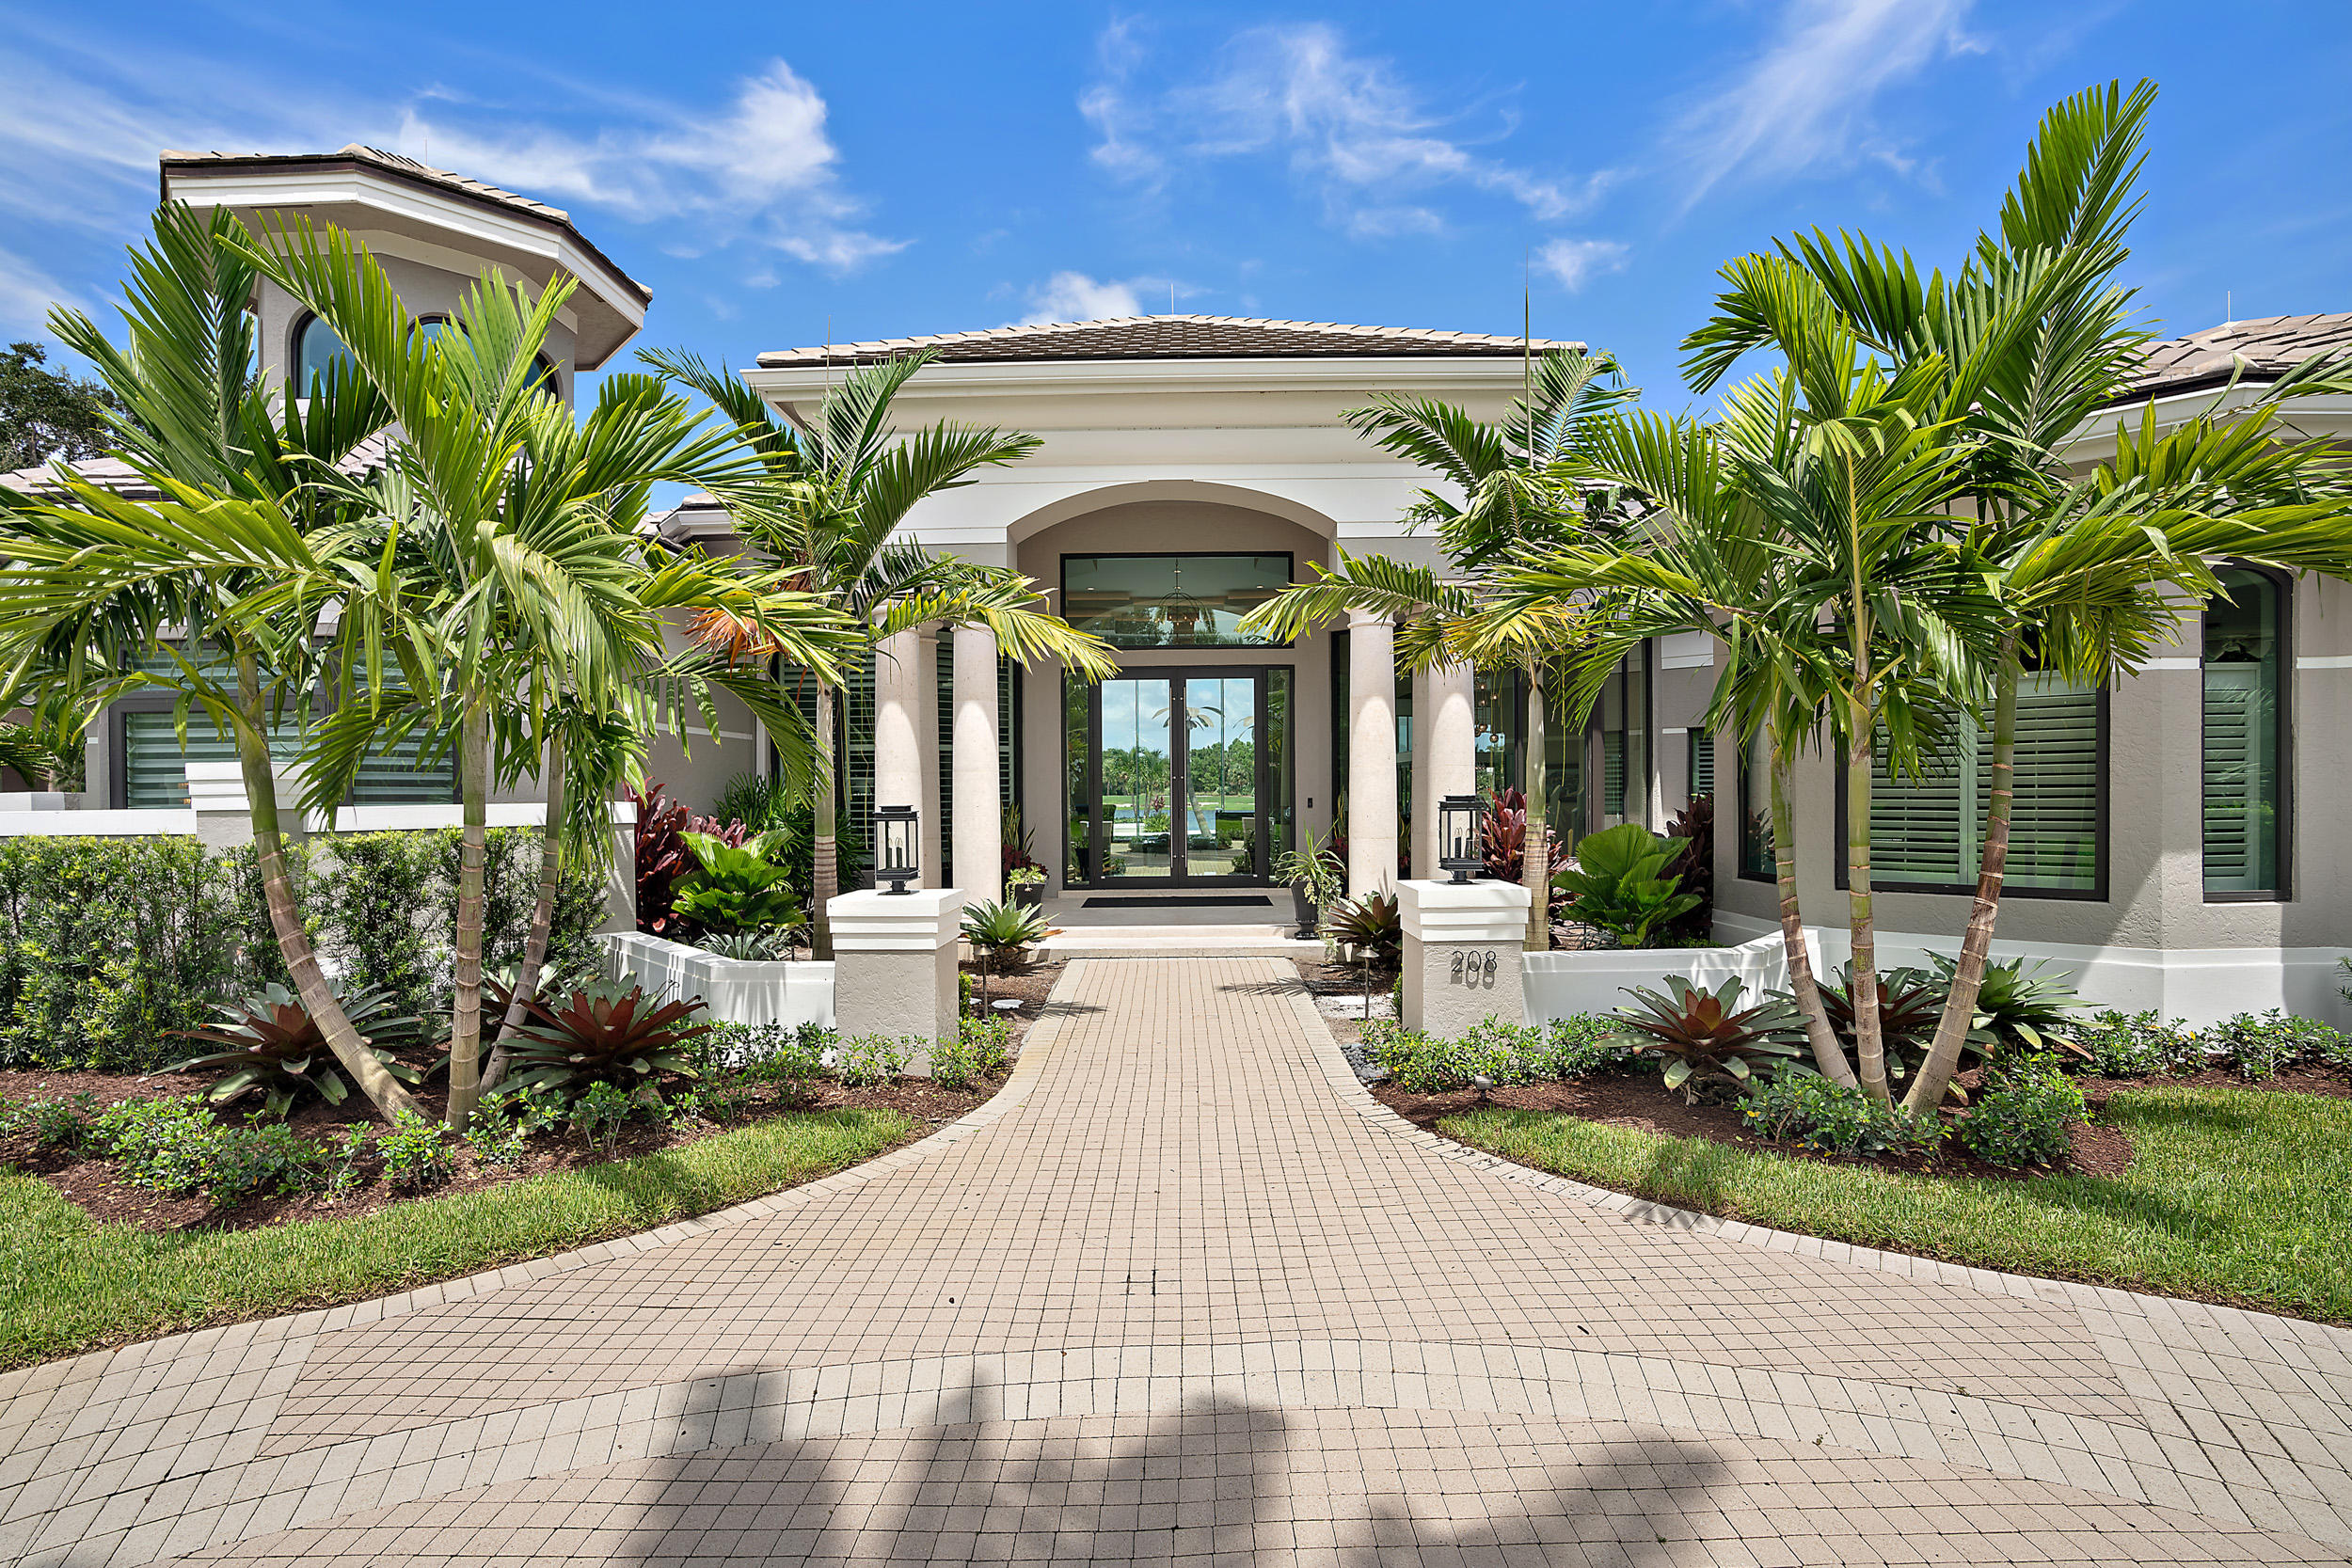 Spectacular estate in Loxahatchee Club completely renovated 2018 on rare over acre lot 1 of 4 double lots in this community. An entertainer's dream home with lake & golf course views seen the moment you reach the front door.Open floor plan boasts 20' coffered ceilings upon entry and spectacular, glass & suspended wire custom wine room holds/ 380 bottles.Gourmet kitchen to please even an iron chef with 10'x5' island & 6' custom made range from France.Oversized Master suite has separate his/her bathrooms & closets. Her's with 12' ceilings & island also master laundry room. 3-car garage with outdoor carpet and built ins.State of the art theatre.Large lanai & outdoor kitchen.House opens up with two walls of folding stack back doors. Putting green & oasis pool. Multi options for a 4th BDRM